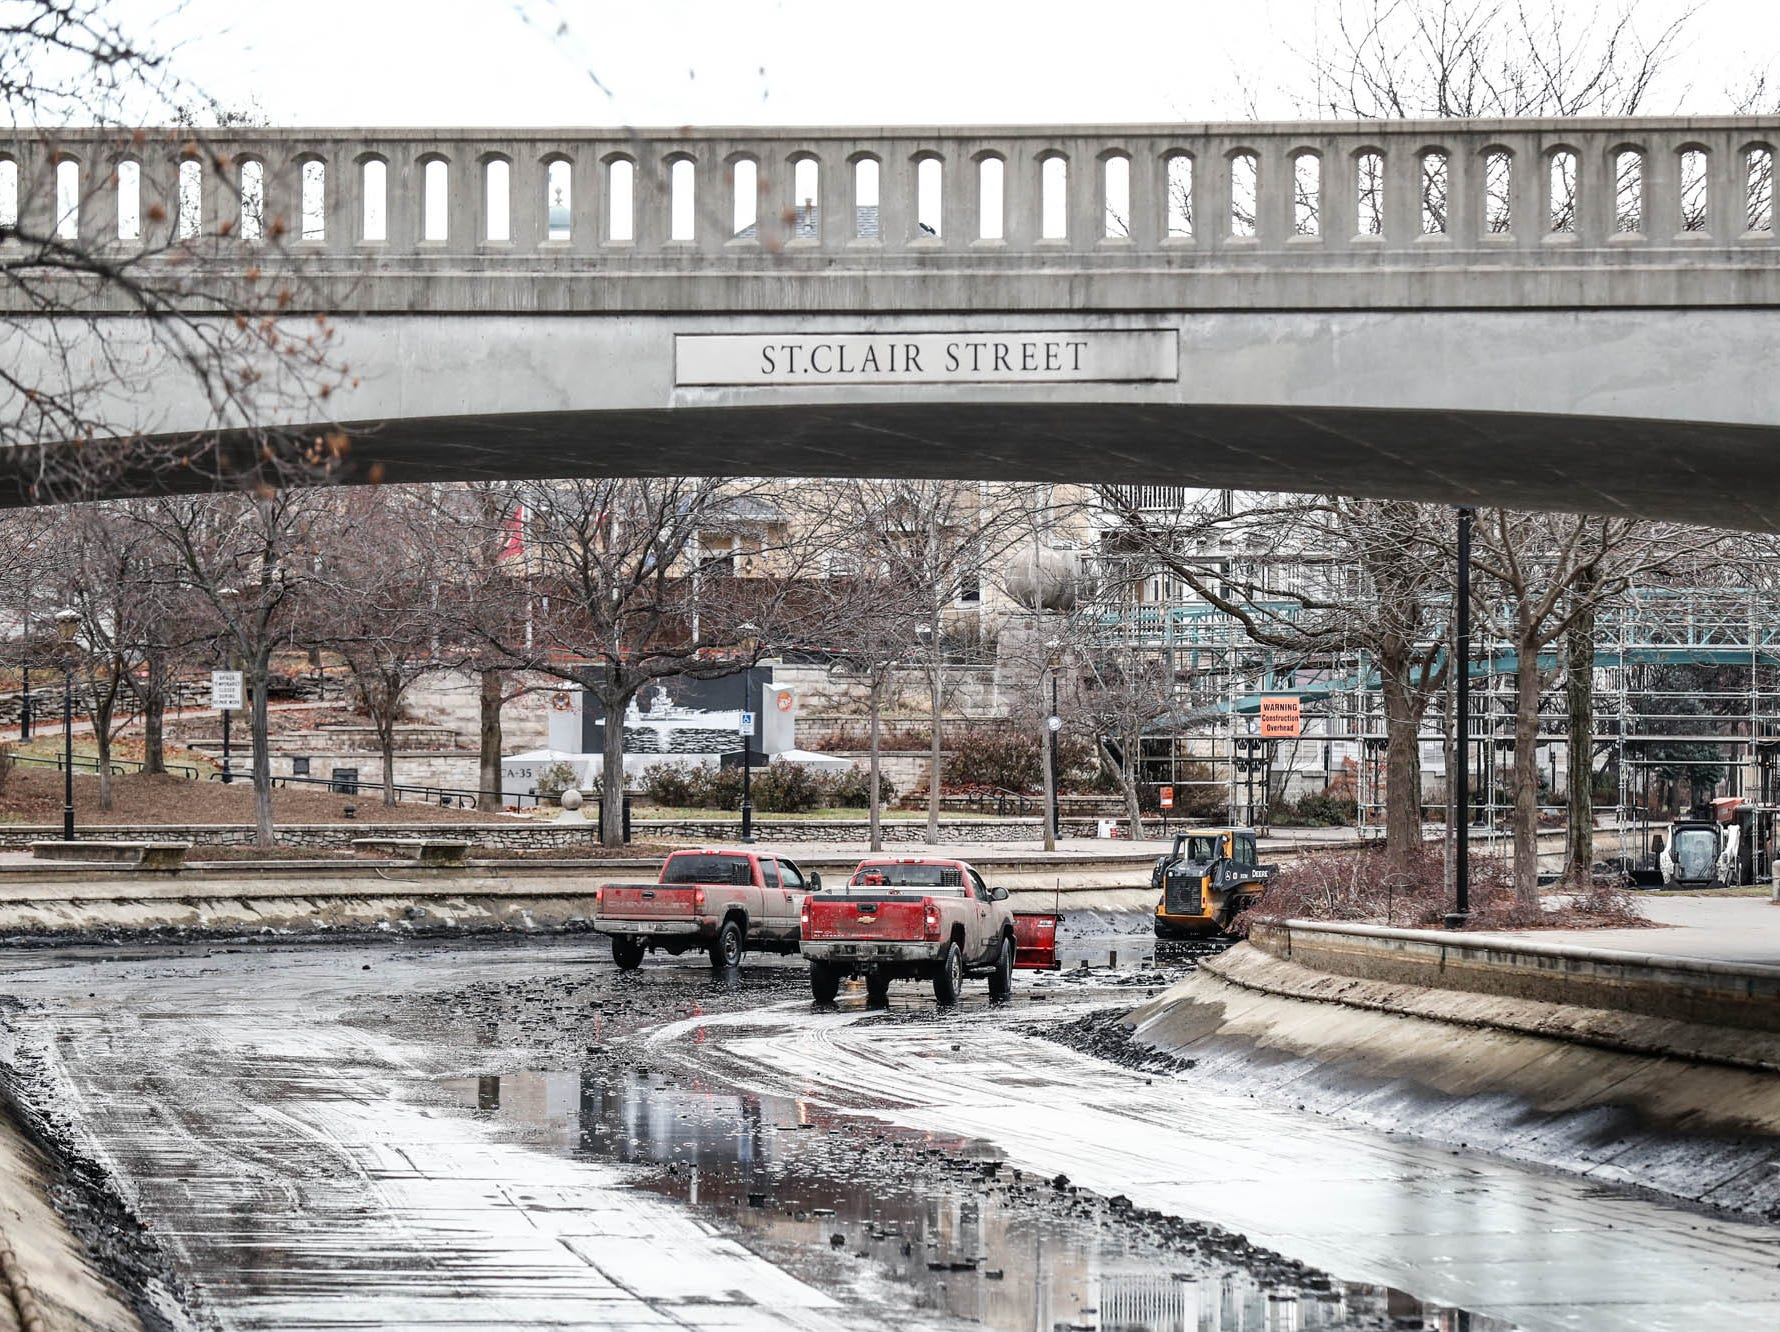 Crew members with Merrell Bros., Inc. use trucks and heavy machinery to remove sediment and organic growth from the Indiana Central Canal in downtown Indianapolis on Wednesday, Dec. 12, 2018. Here the crew works around the St. Claire St. Bridge.